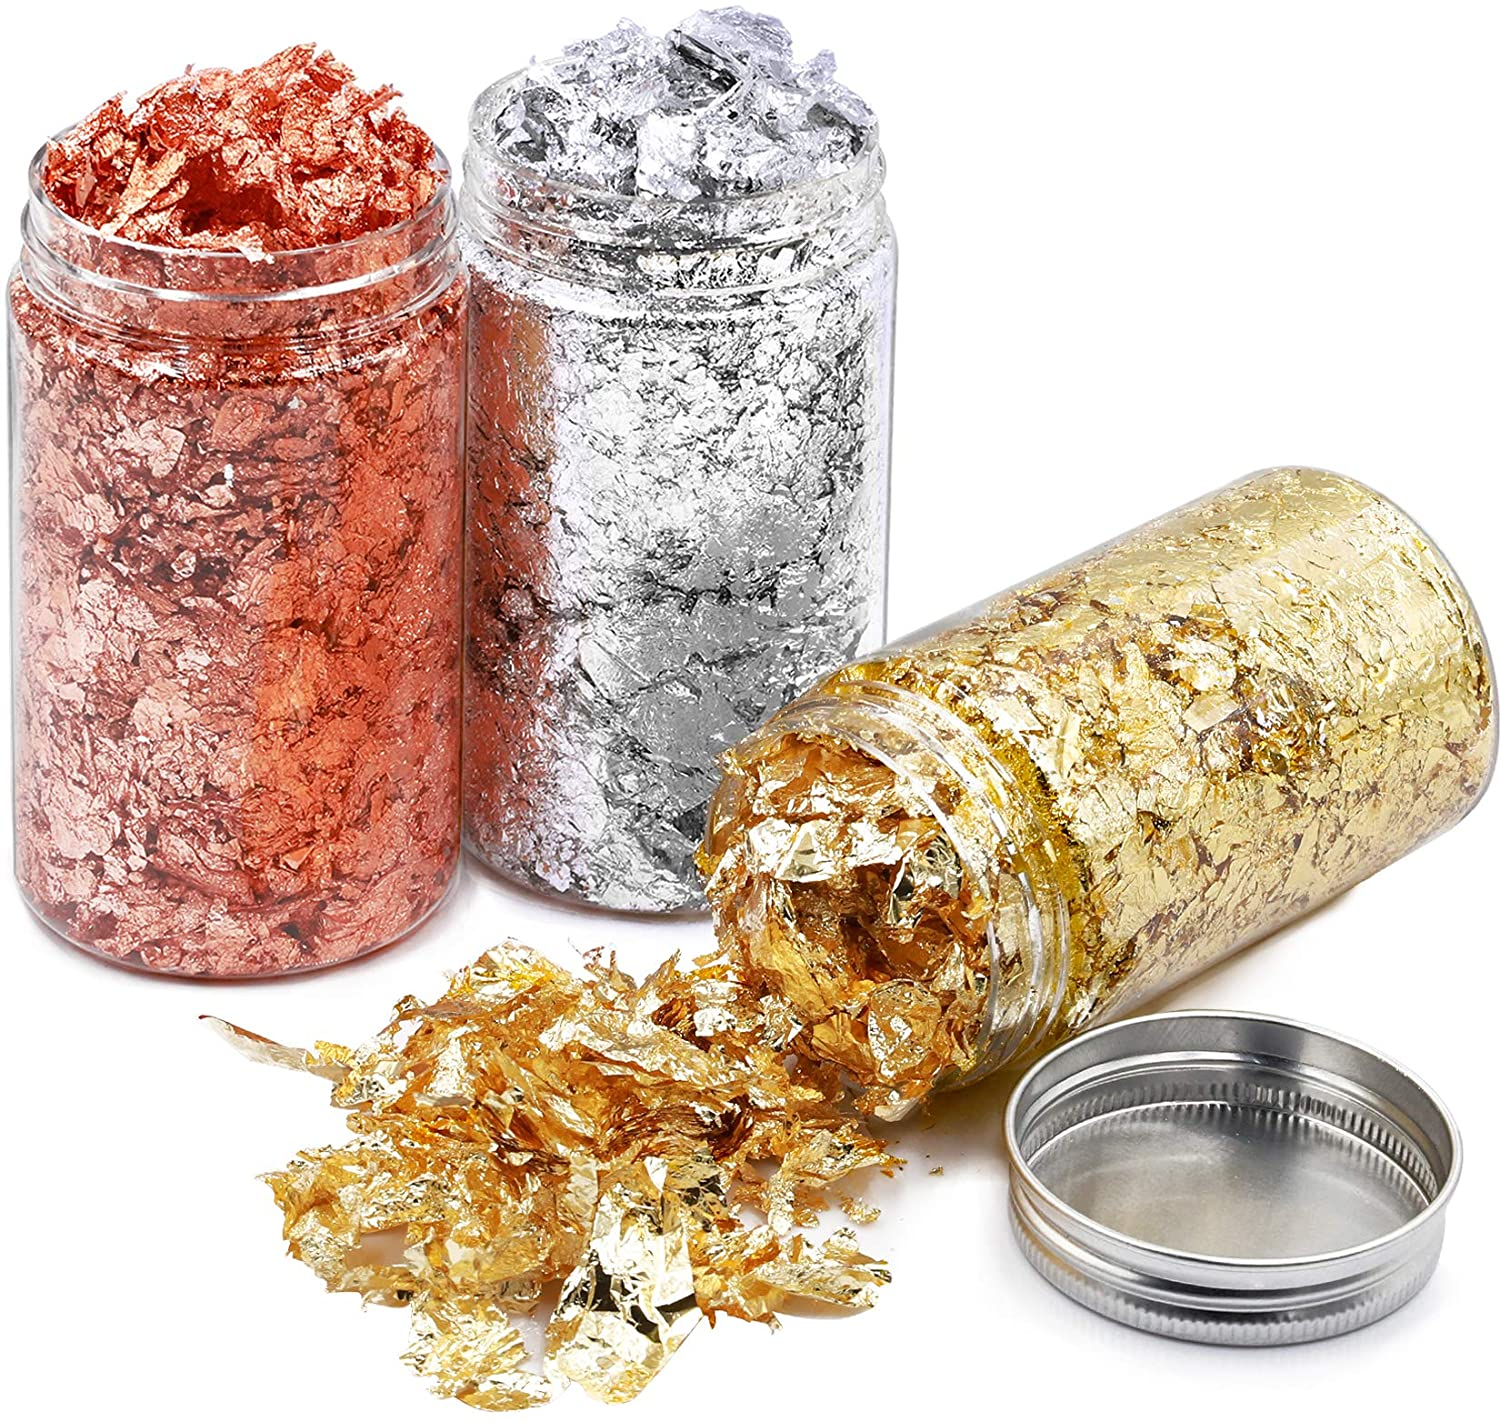 Vignee Gold Foil Flakes for Resin,45 Gram Gilding Foil Flakes for Nails,Gold Foil Flakes Metallic Leaf for Nails,Painting, Crafts, Slime and Resin Jewelry Making(Gold,Silver,Copper Colors)